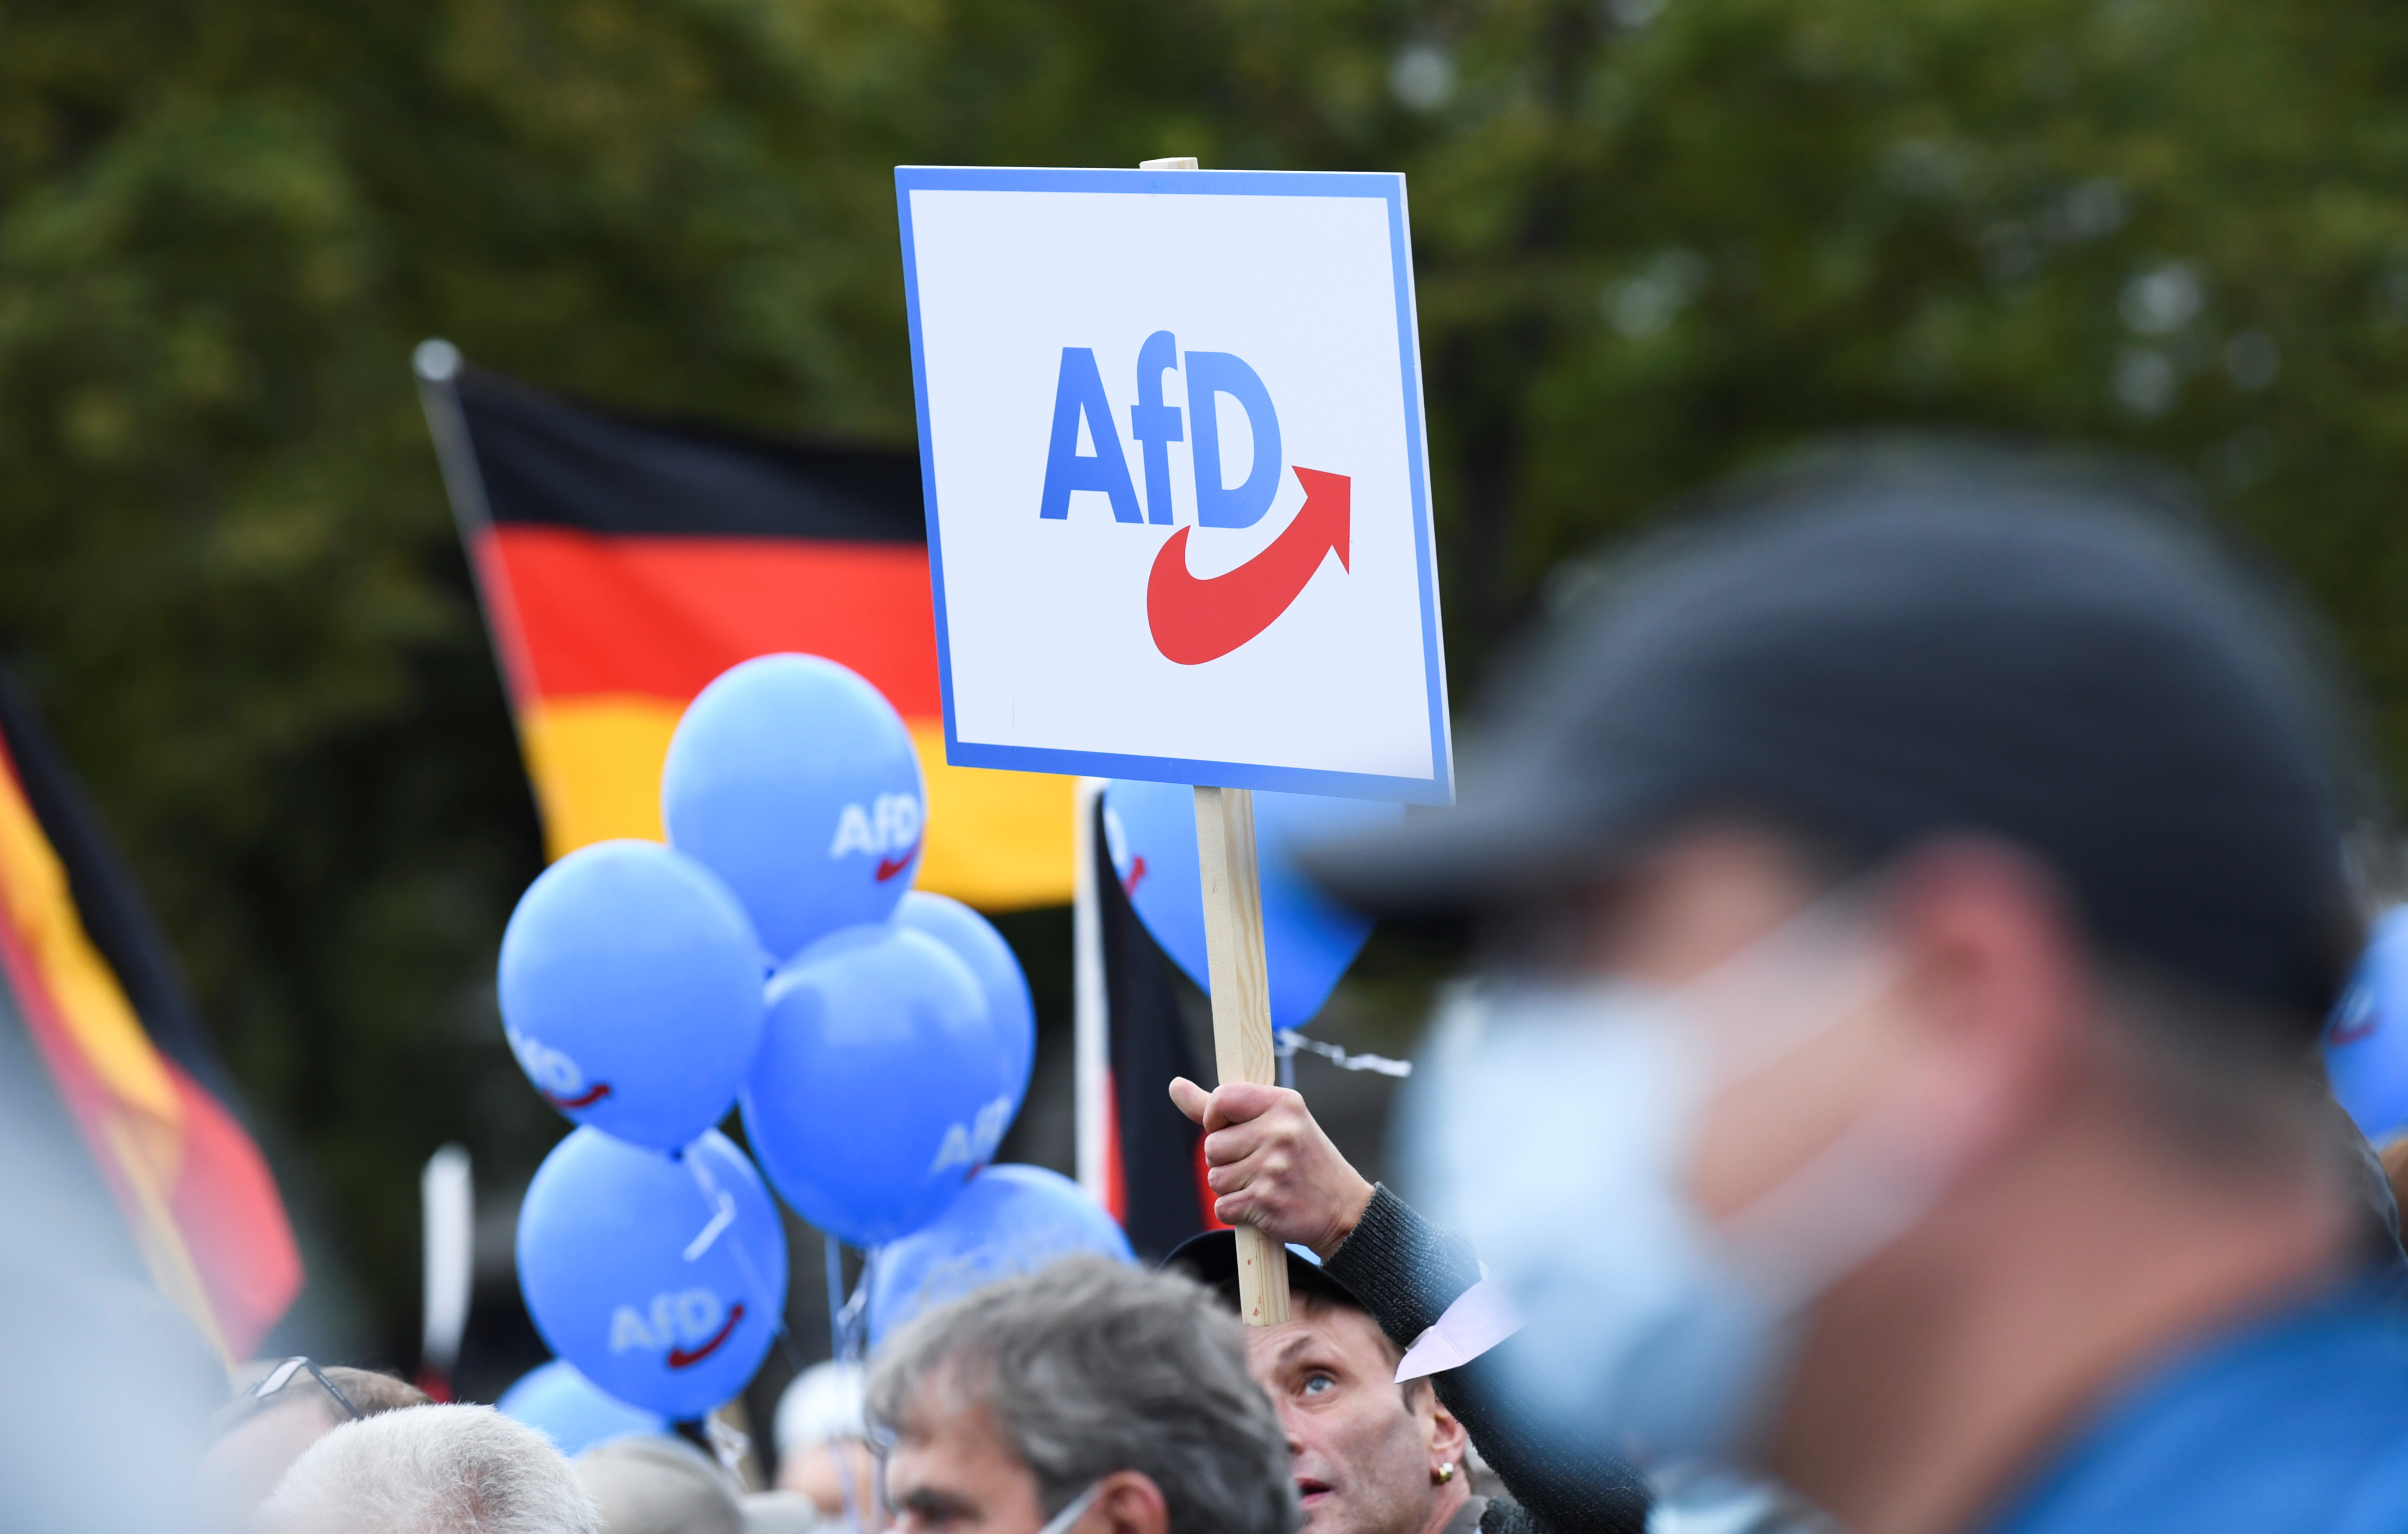 Supporters hold balloons, flags and a placard during a campaign of right wing Alternative for Germany (AfD) top candidates for the upcoming general election, Alice Weidel and Tino Chrupalla, in Berlin, Germany, September 24, 2021. REUTERS/Annegret Hilse